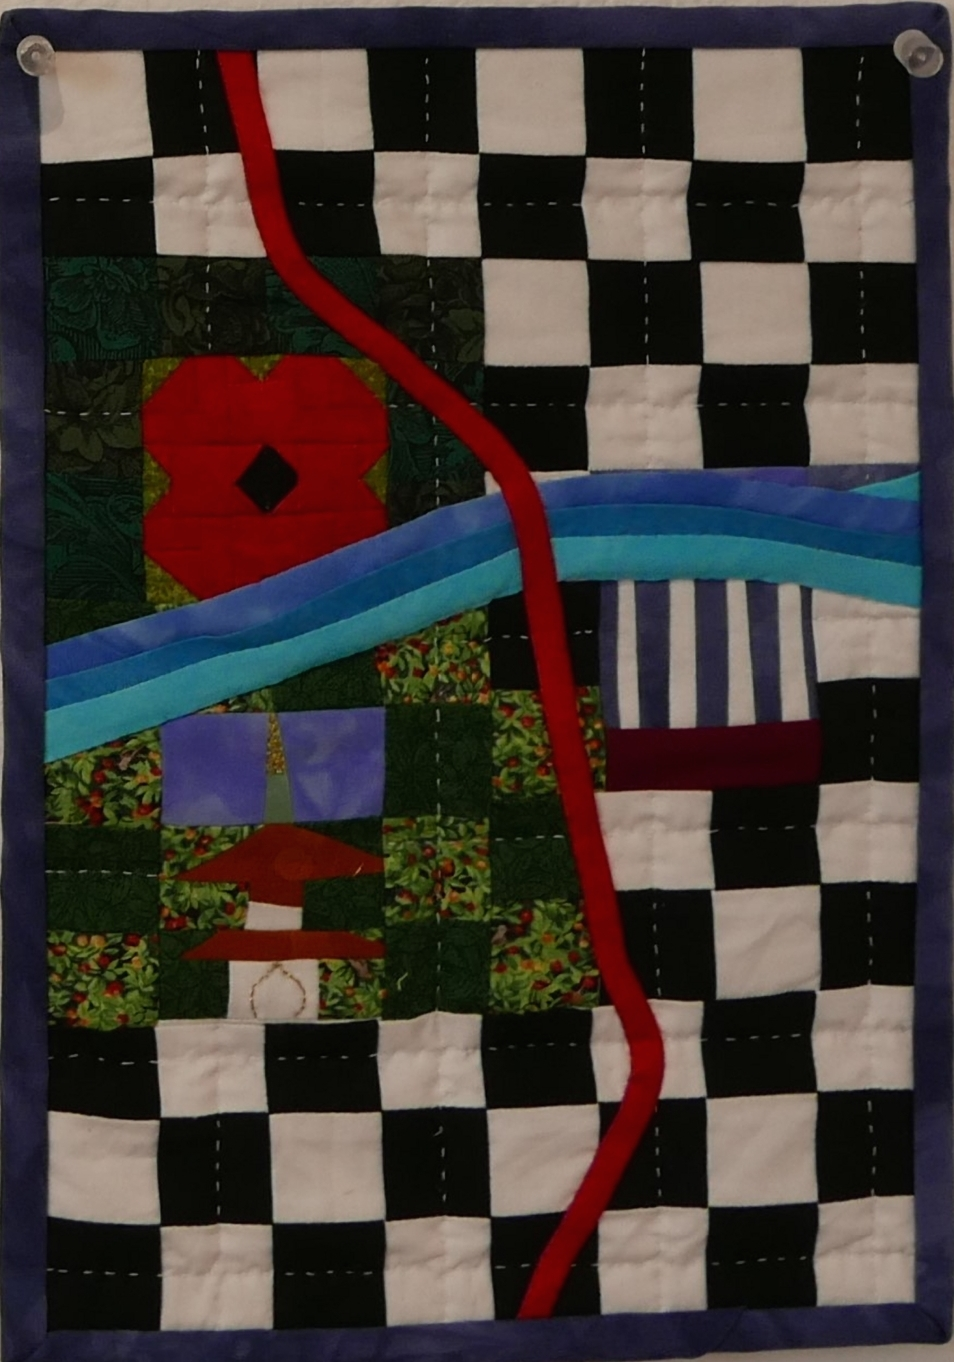 The Thames in Textiles: Work from the Morley show